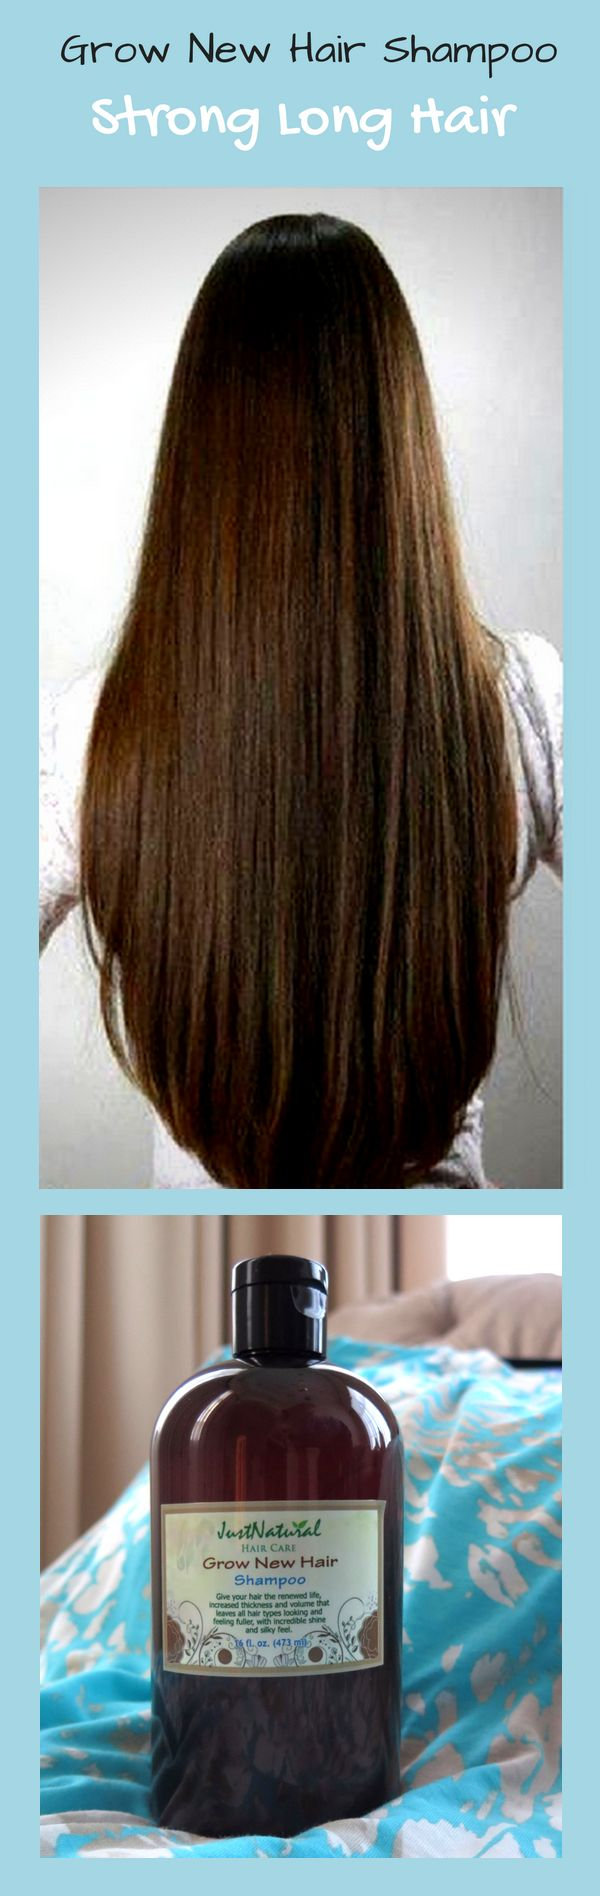 I have had thinning, fine, breaking hair for years. I used another product, sold on tv, and it only made my hair oily. I have noticed new hair growth and my hair is no longer breaking off. I am very pleased www.imperialmindset.com/how-to-let-go-of-the-past/